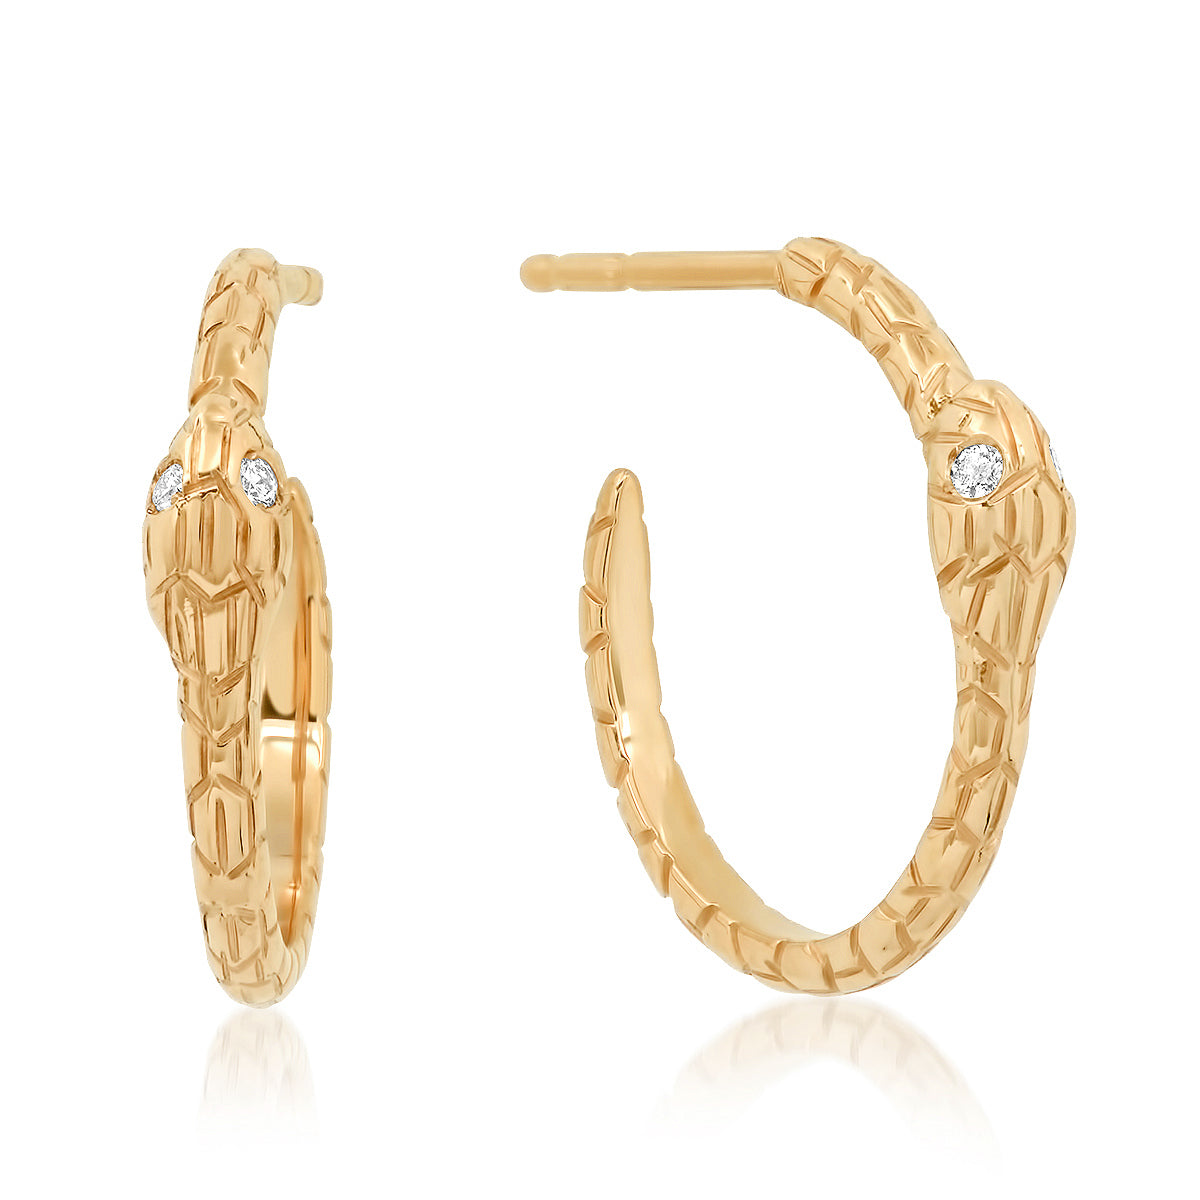 The Ashleigh Bergman Collective x Maya Brenner Diamond Snake Hoop Earrings